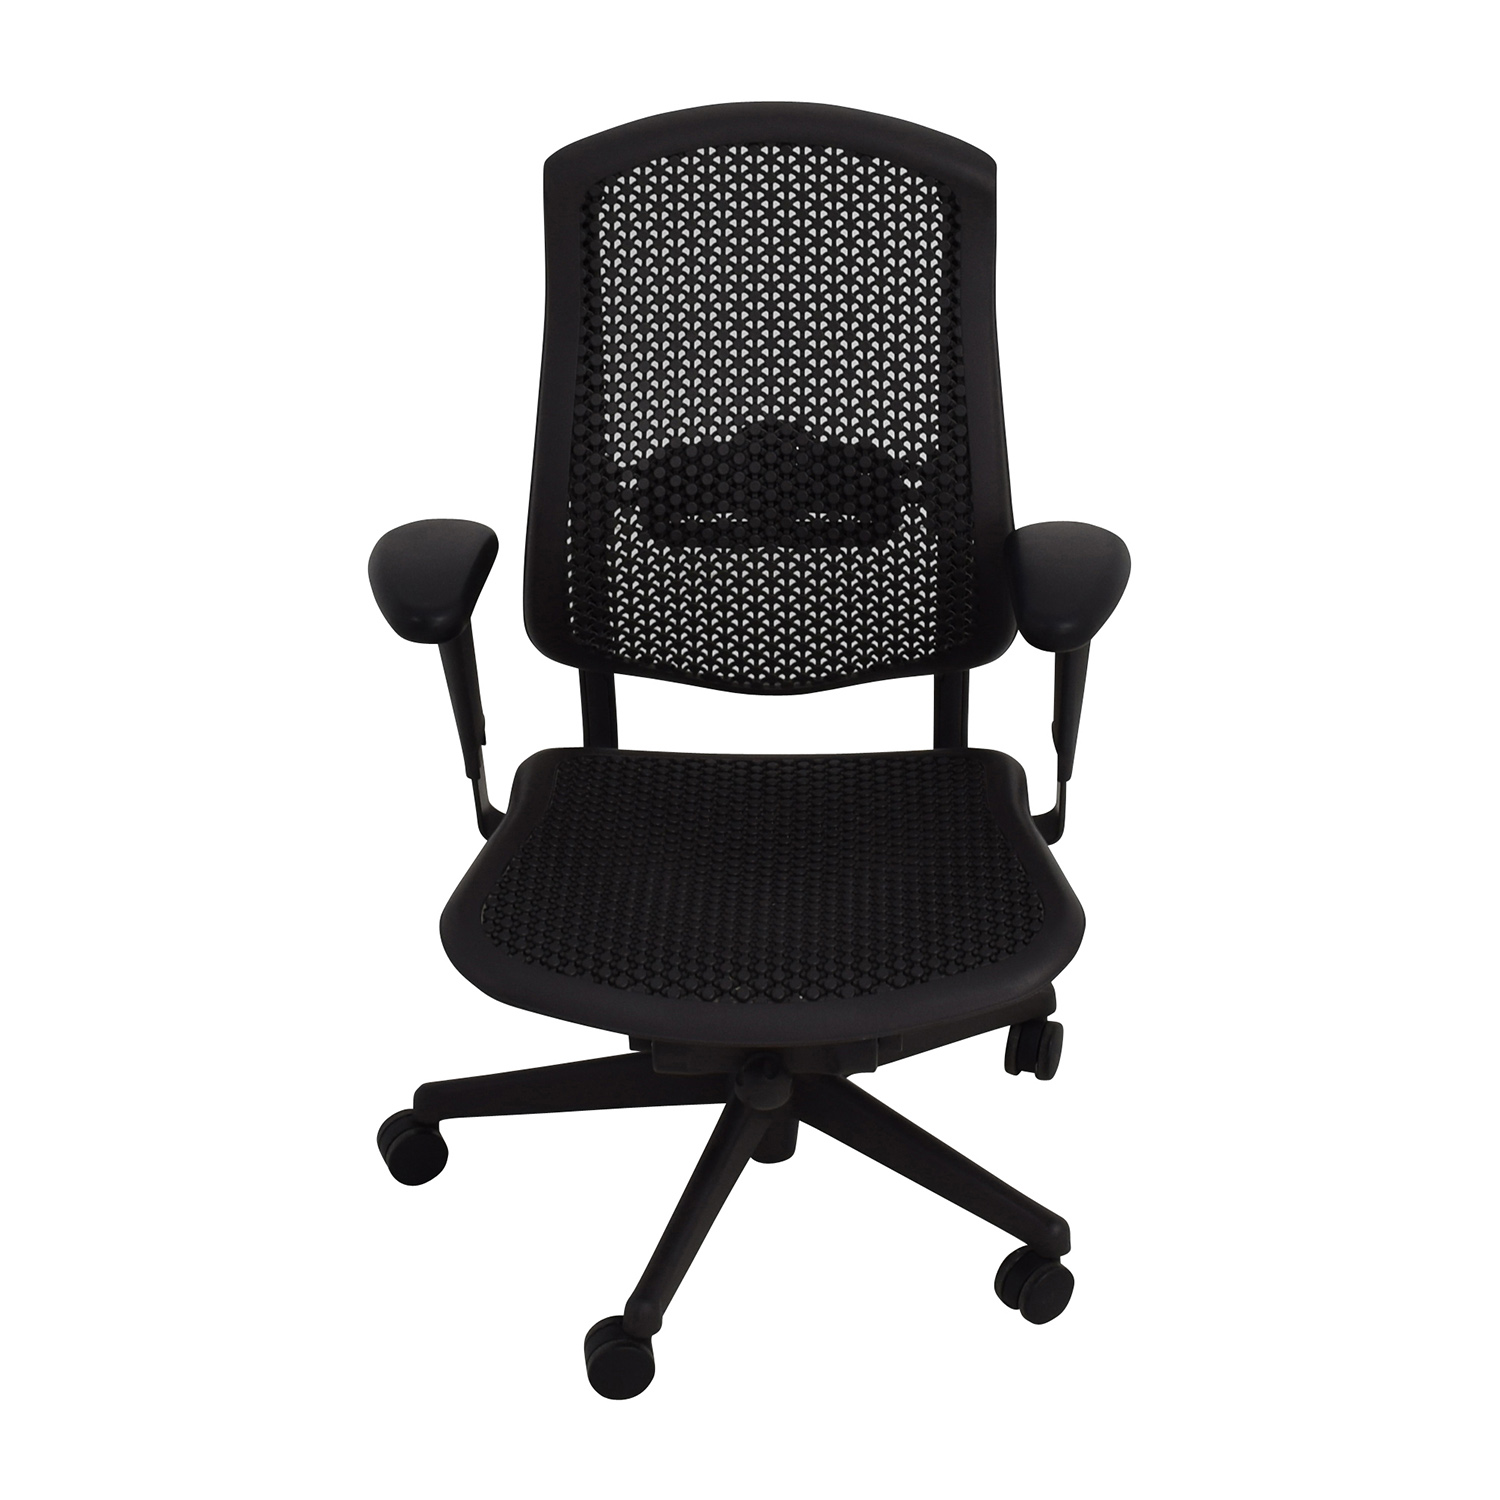 Herman Miller Herman Miller Biomorph Ergonomic Black Desk Chair on sale